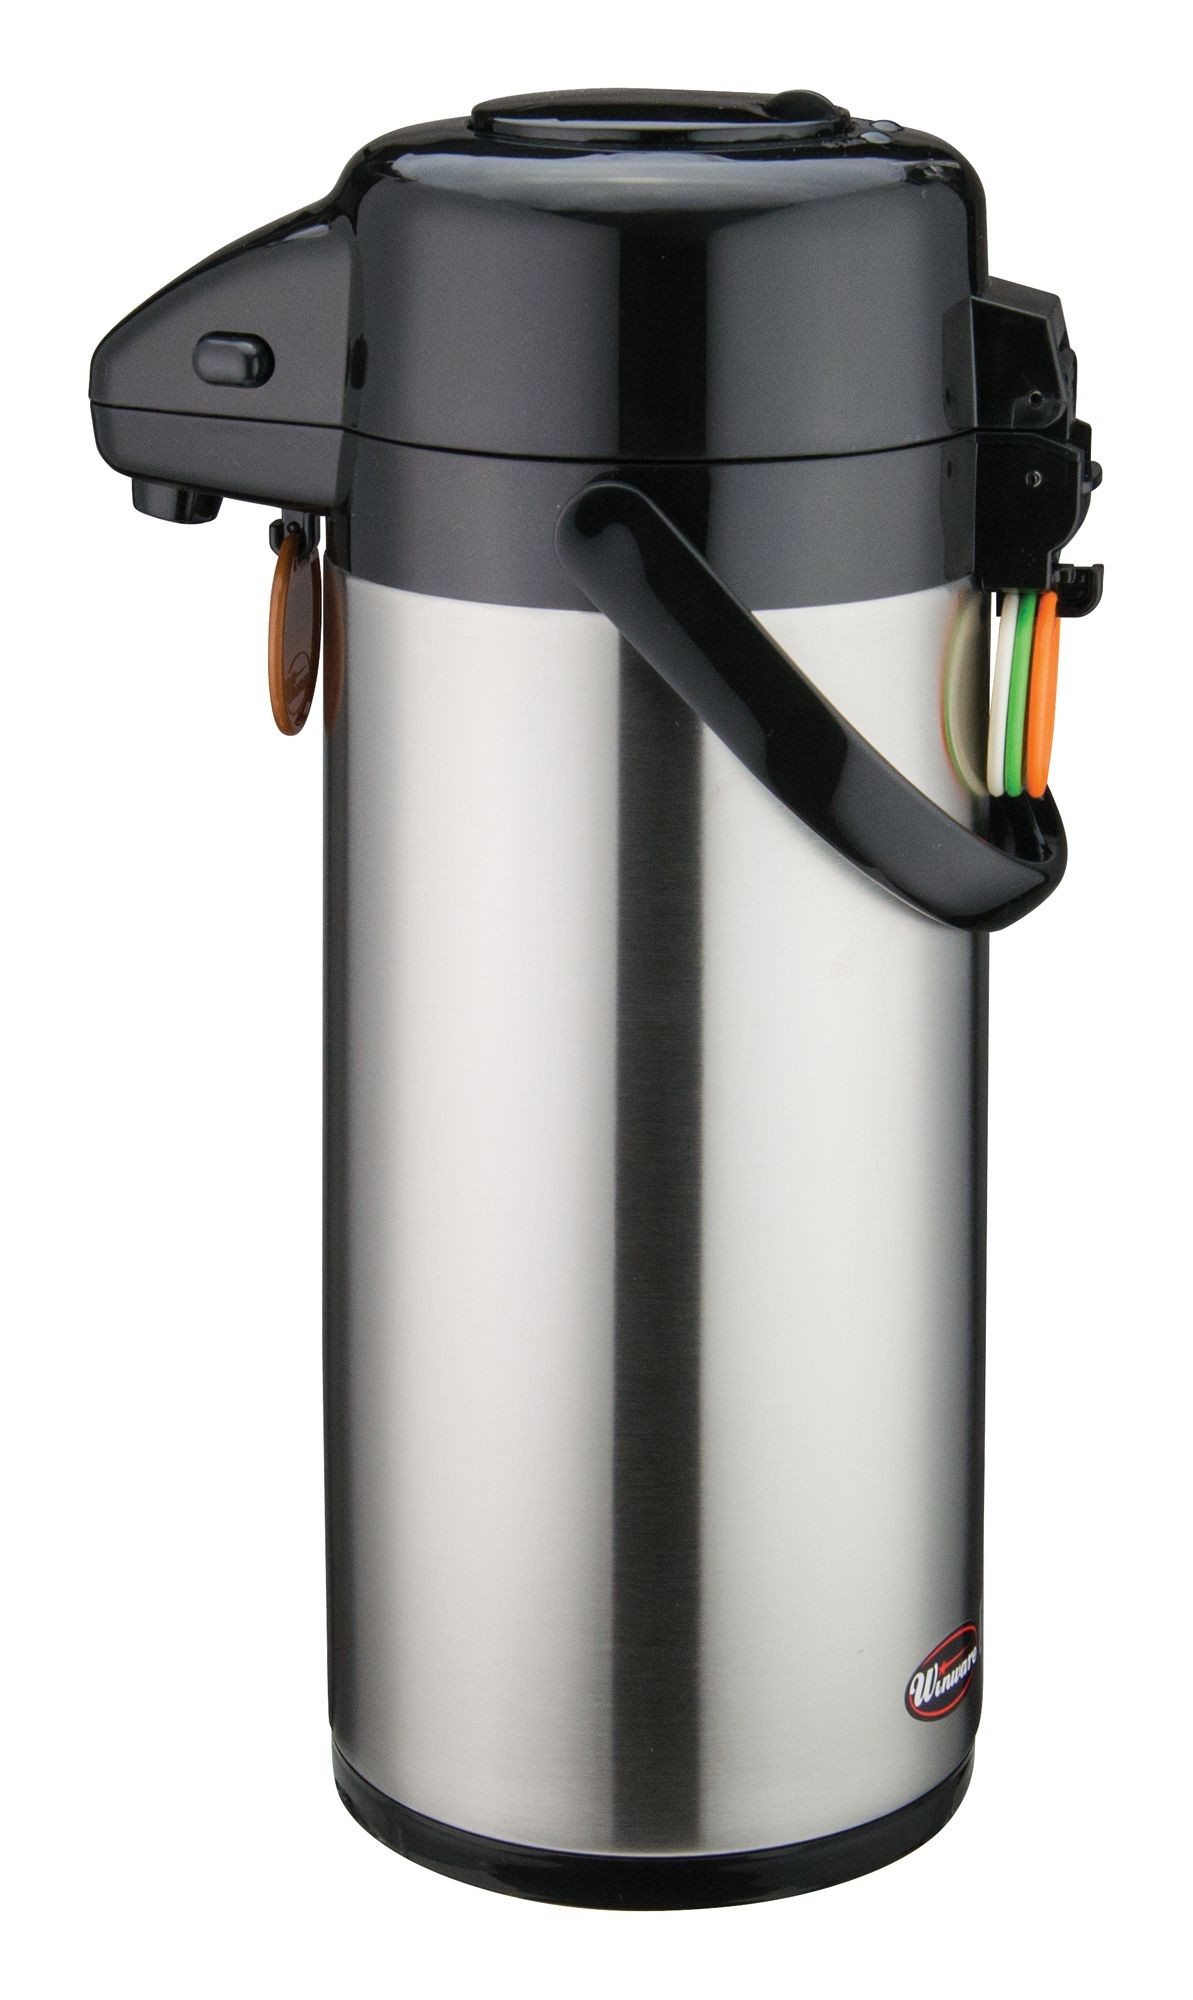 Stainless Steel Body & Liner Push-Button 2.5-L Vacuum Server